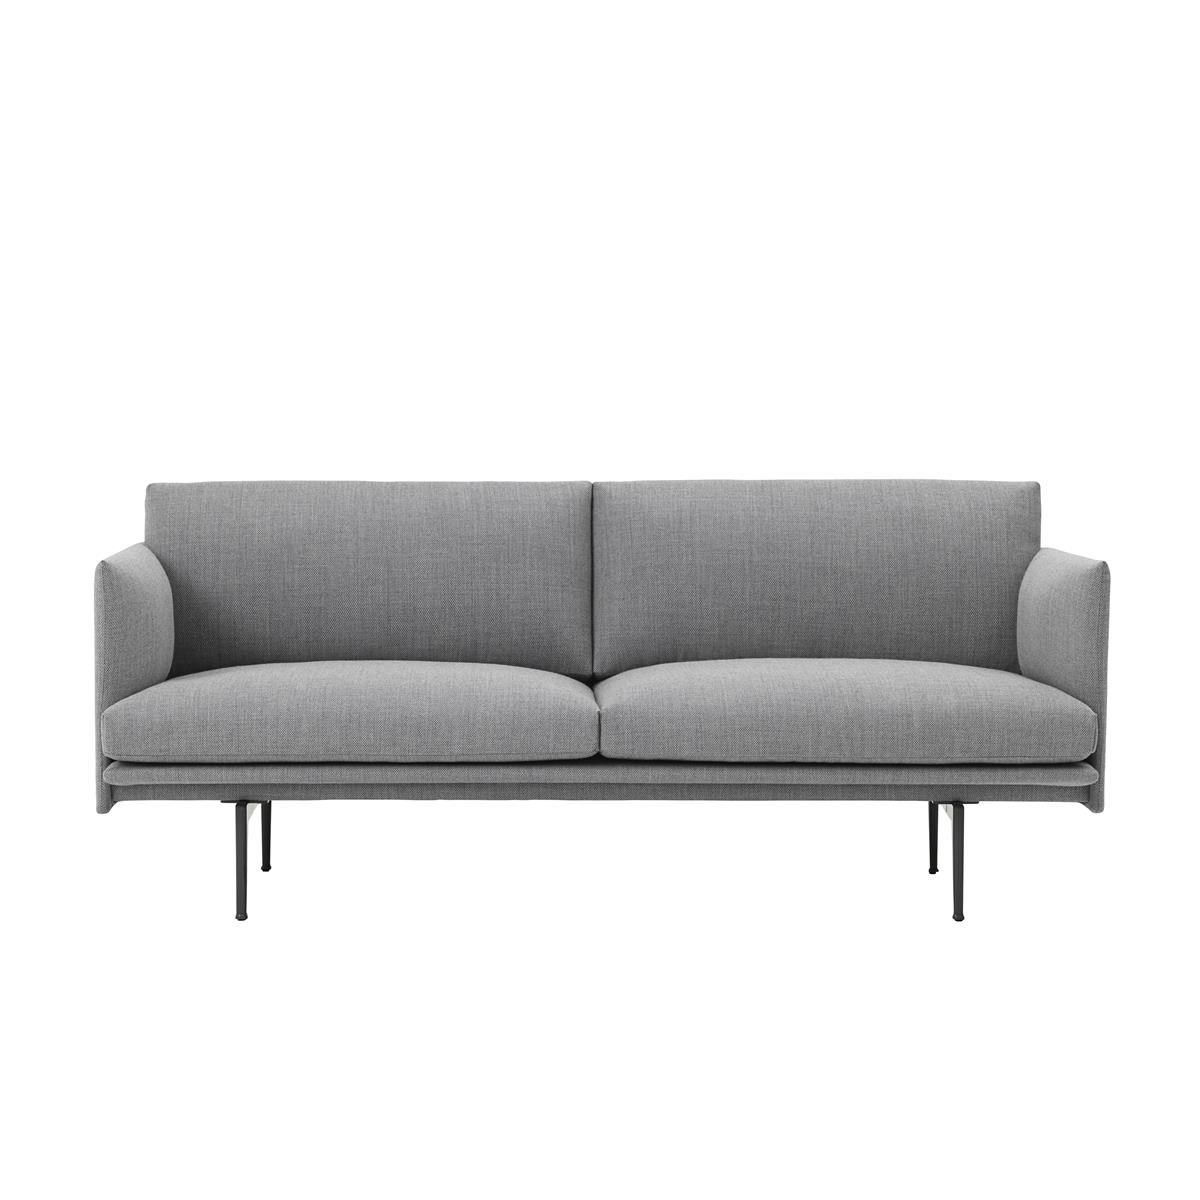 Outline Sofa 2 Seater - Kvadrat Fiord & Black